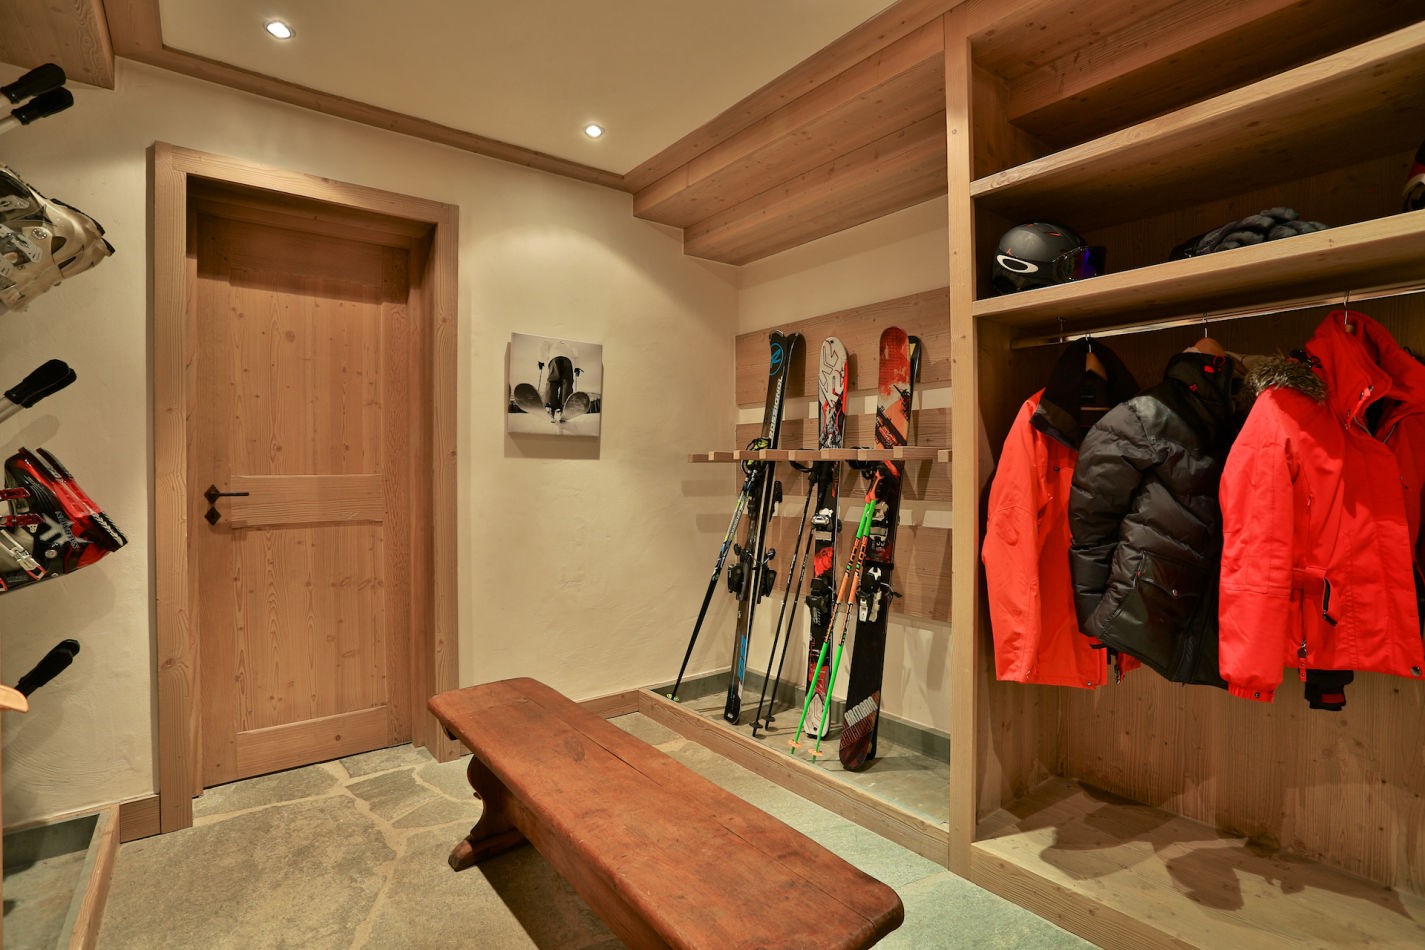 boot-room-image-147